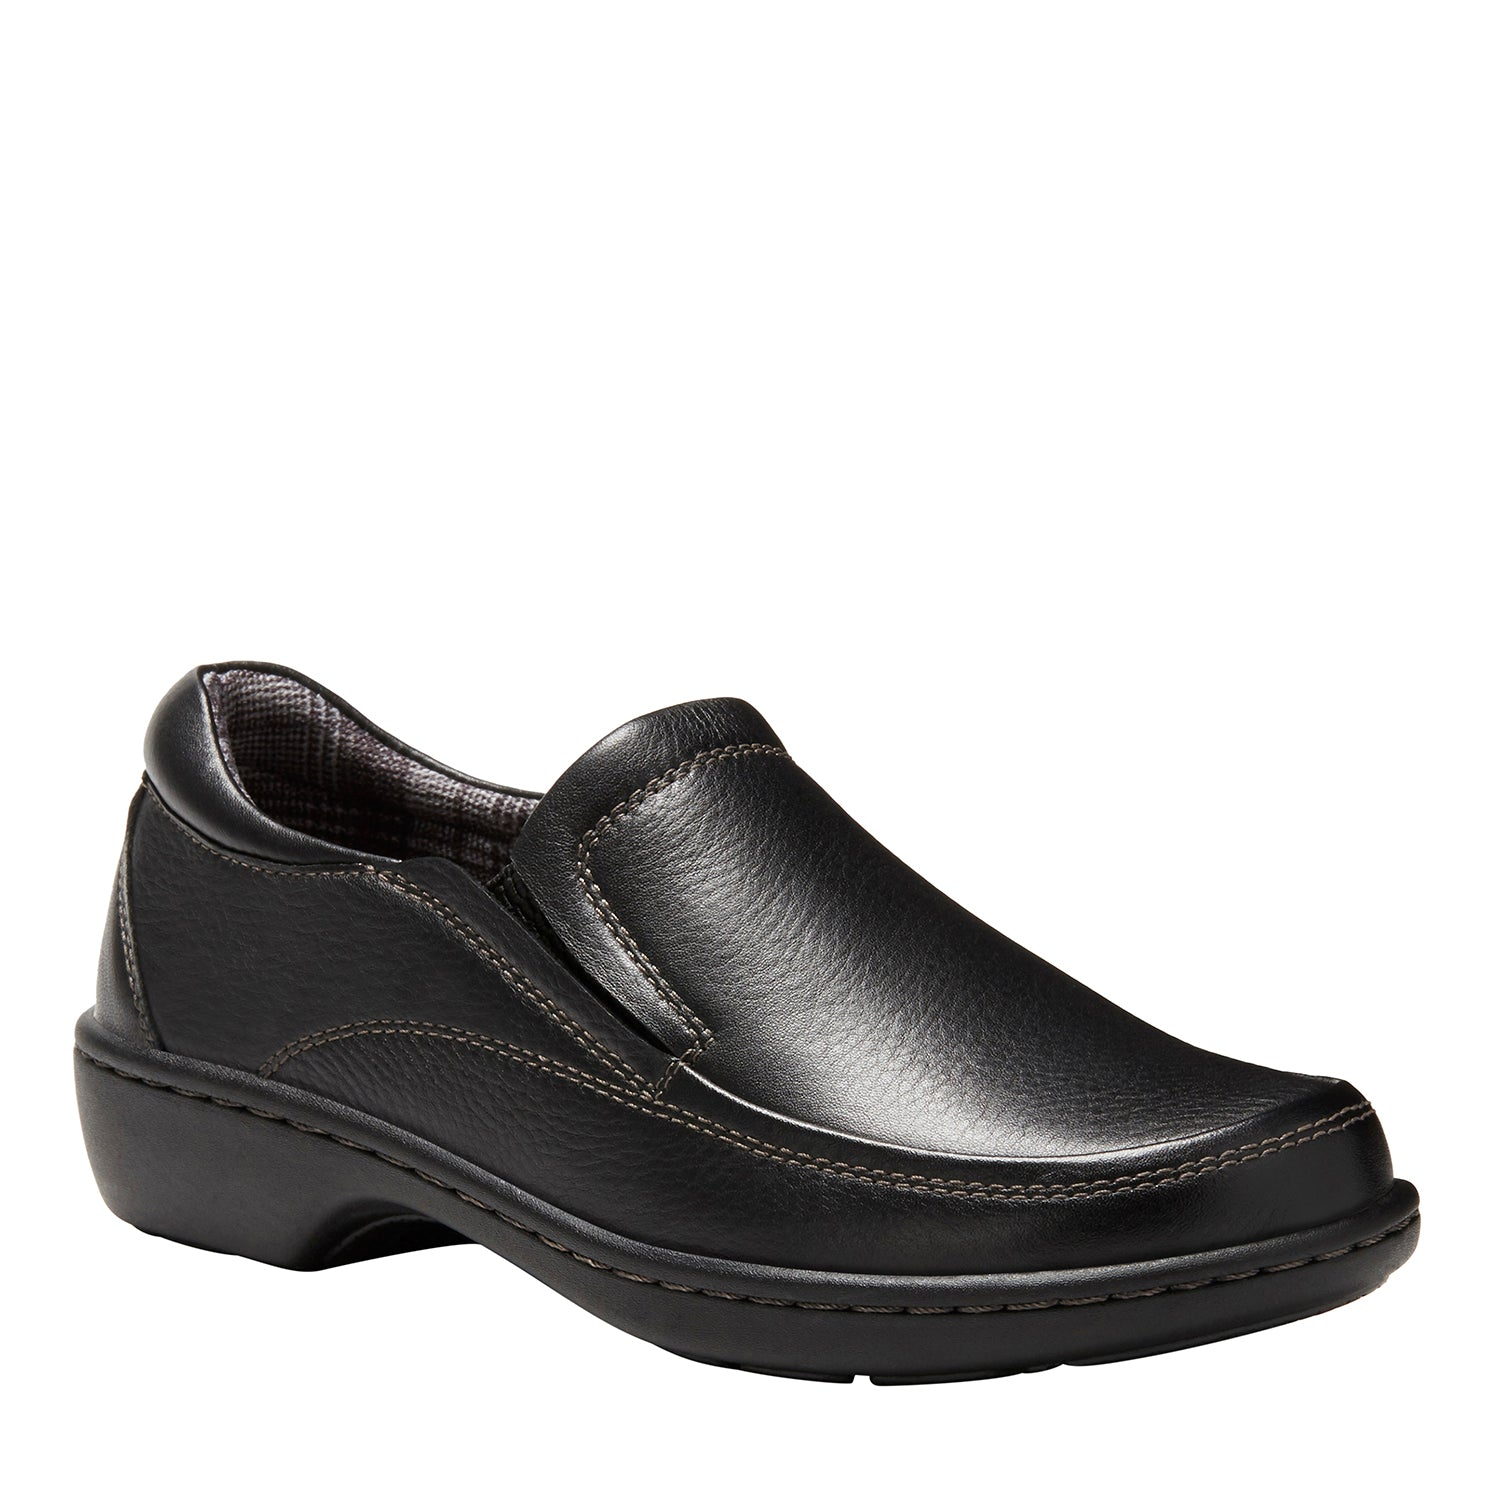 'Eastland' 3895-01 - Kaitlyn Slip On - Black